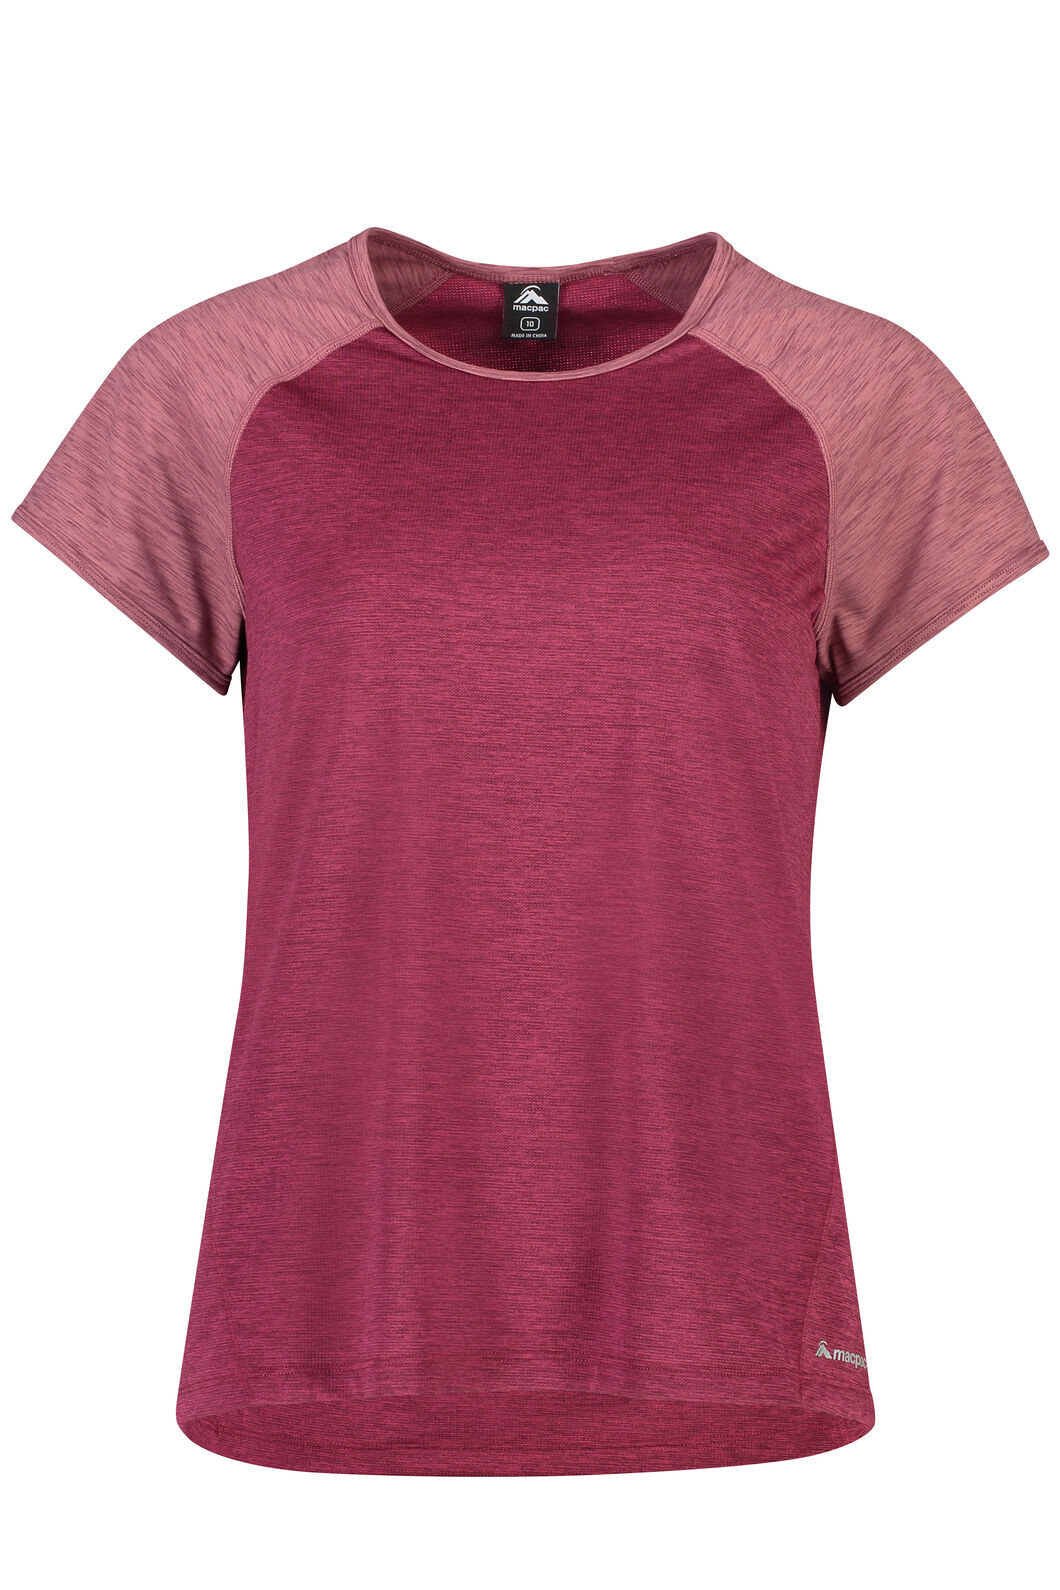 Macpac Take a Hike Short Sleeve Top - Women's, Beet Red, hi-res